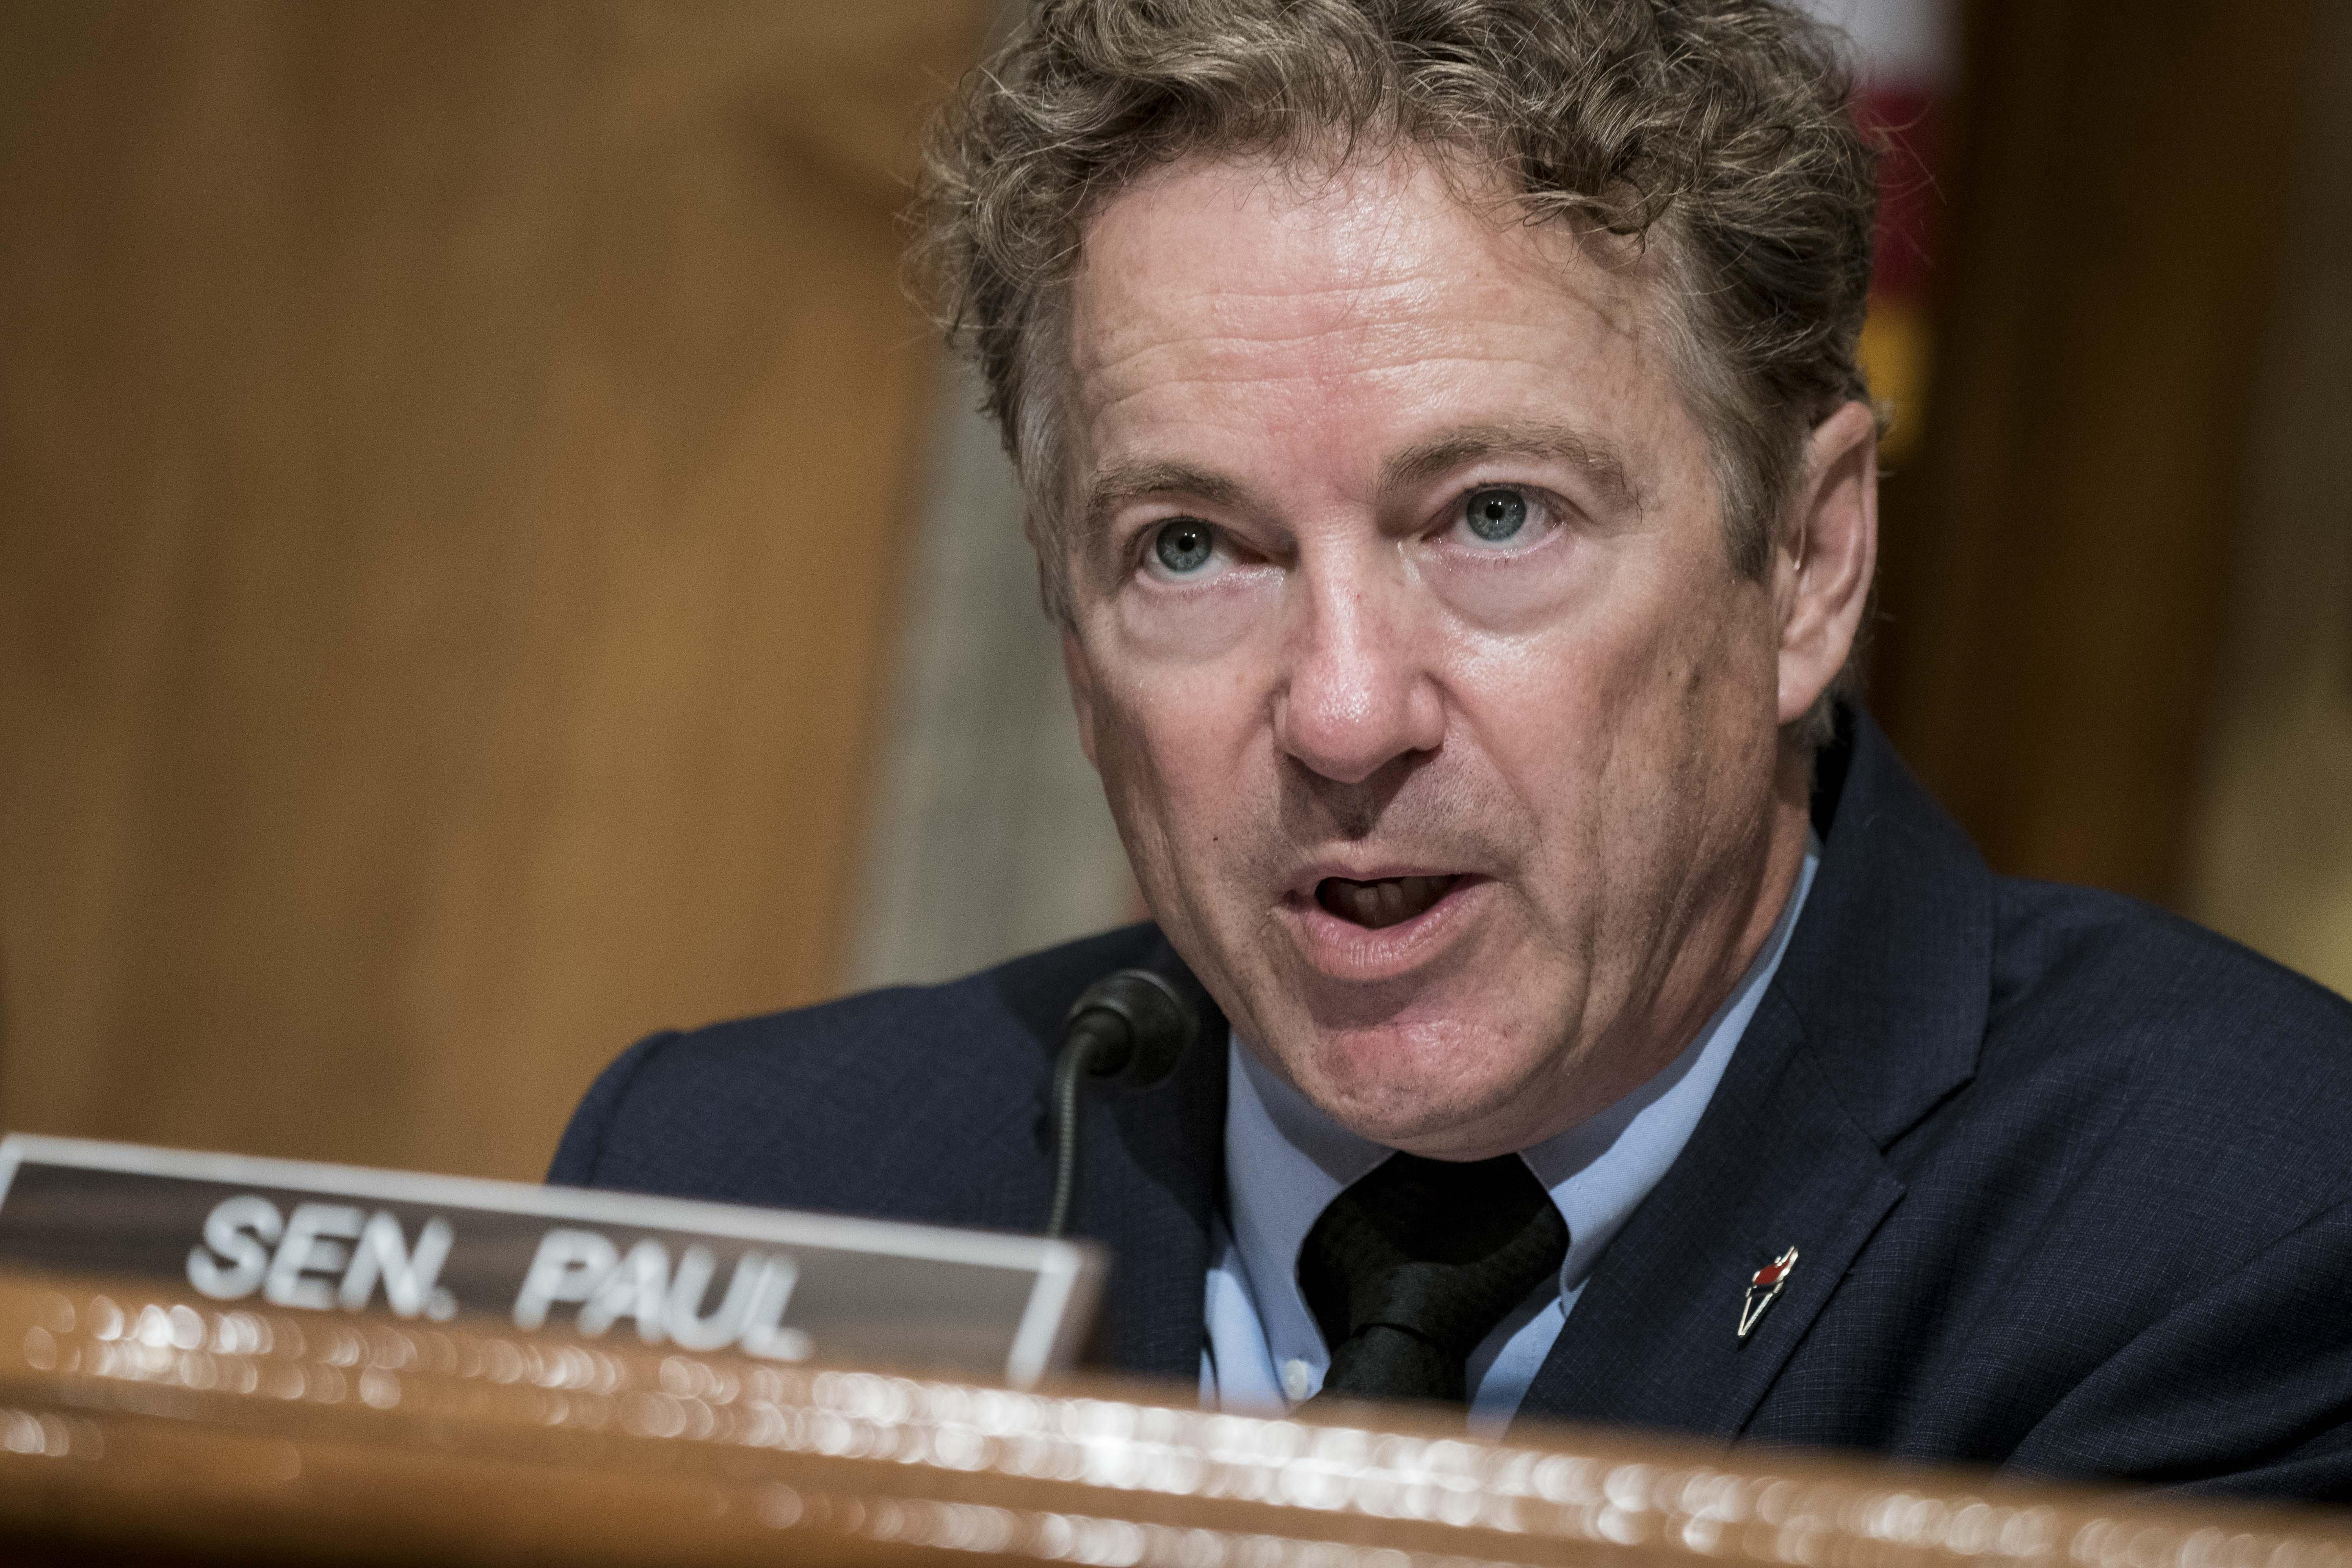 Sen. Paul: Why I didn't quarantine after getting tested